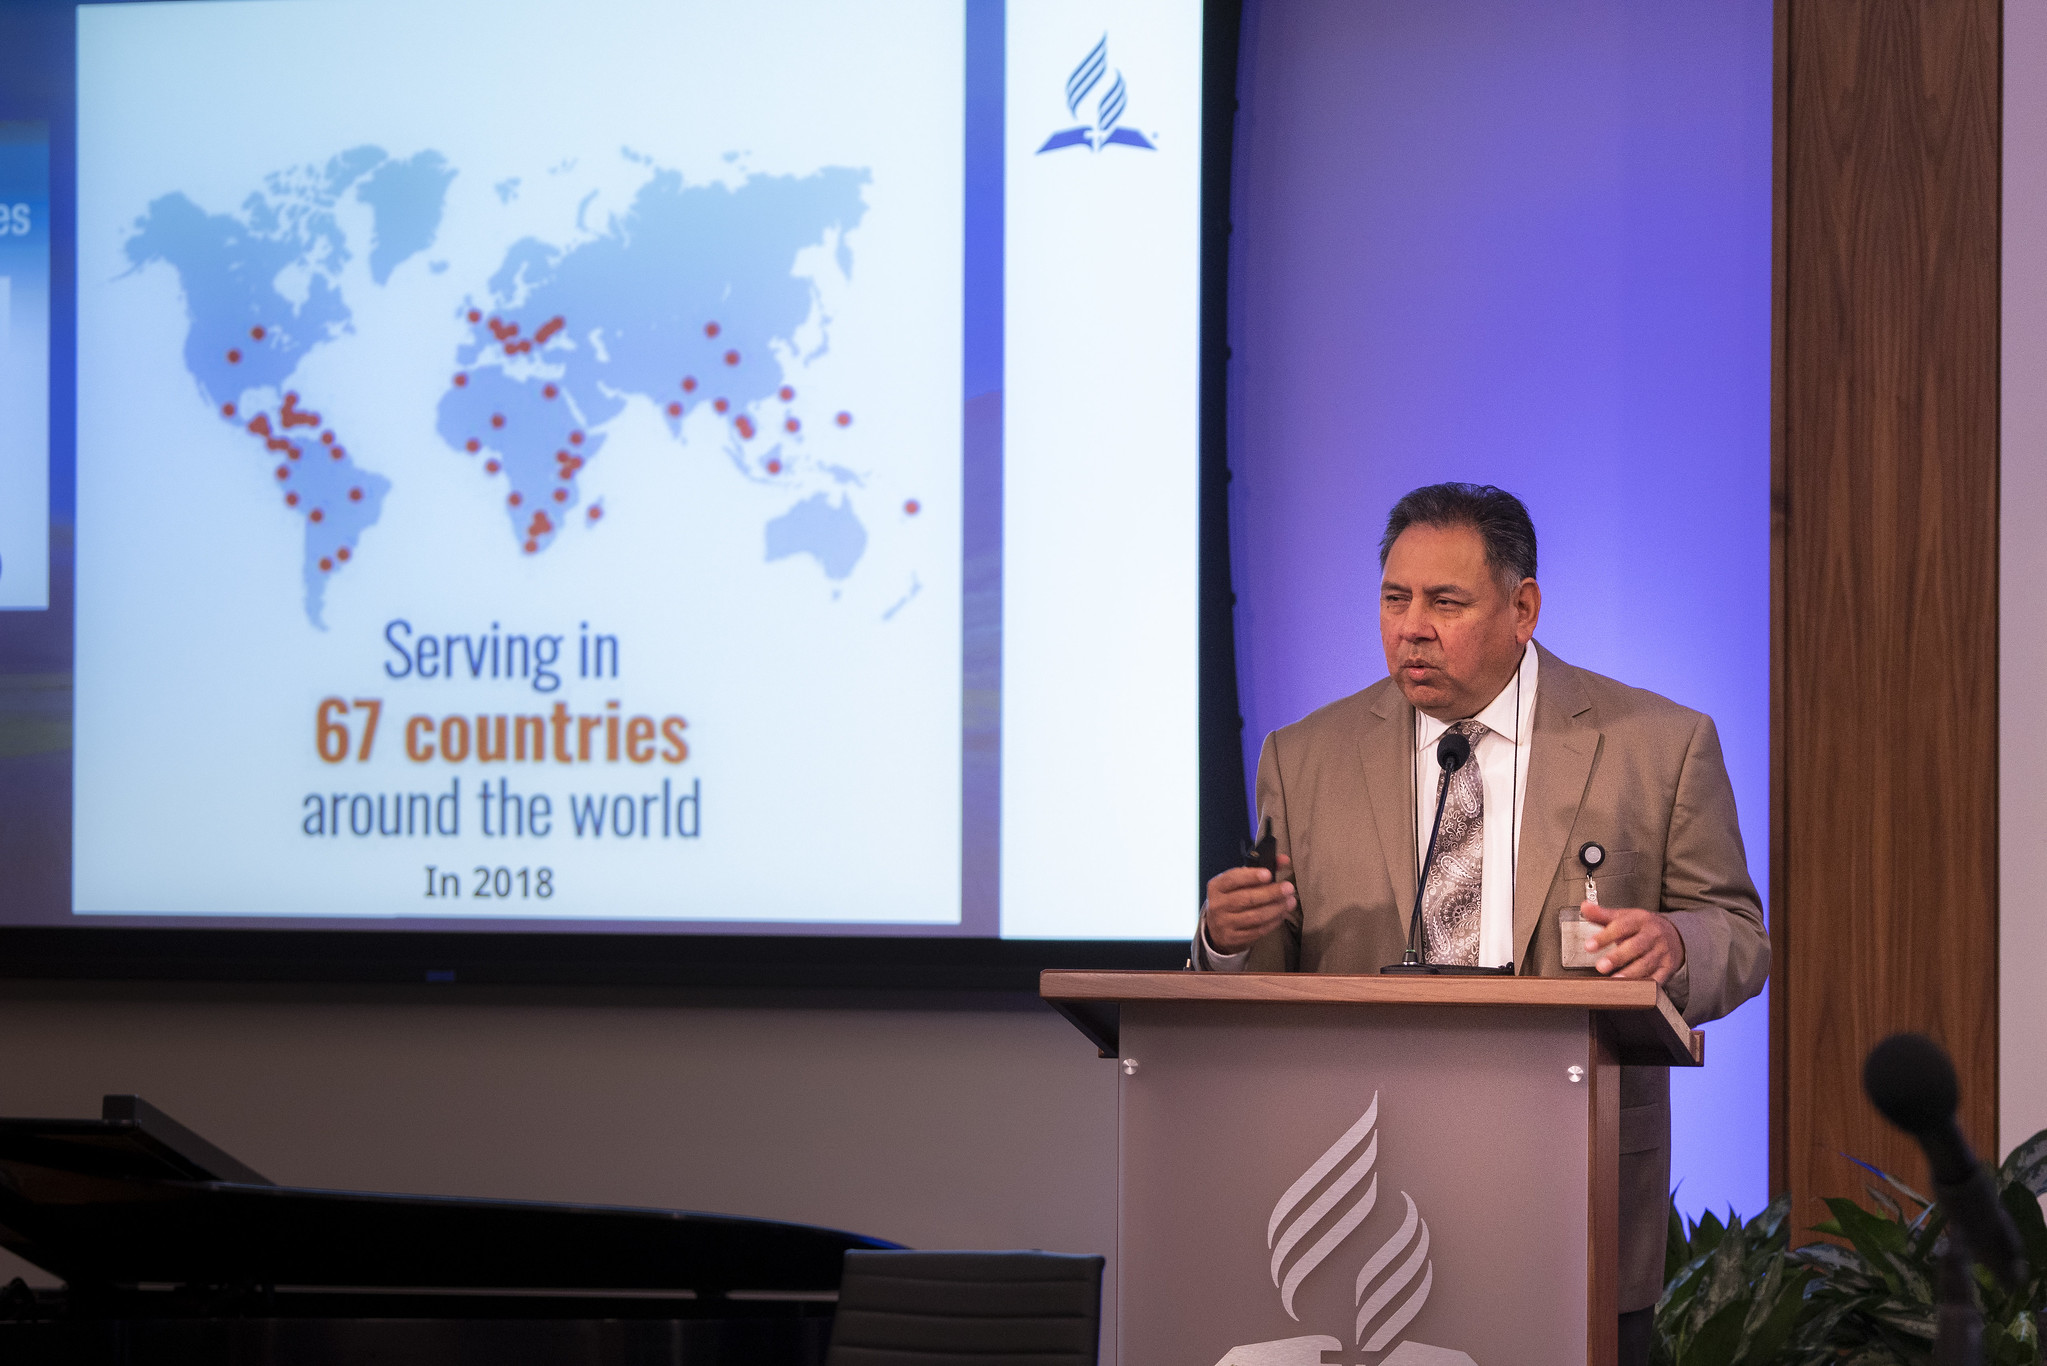 Ernest Hernandez, director of the Office of Volunteer Missions, shares a report on volunteer and missionary activity in the NAD. Photo by Pieter Damsteegt